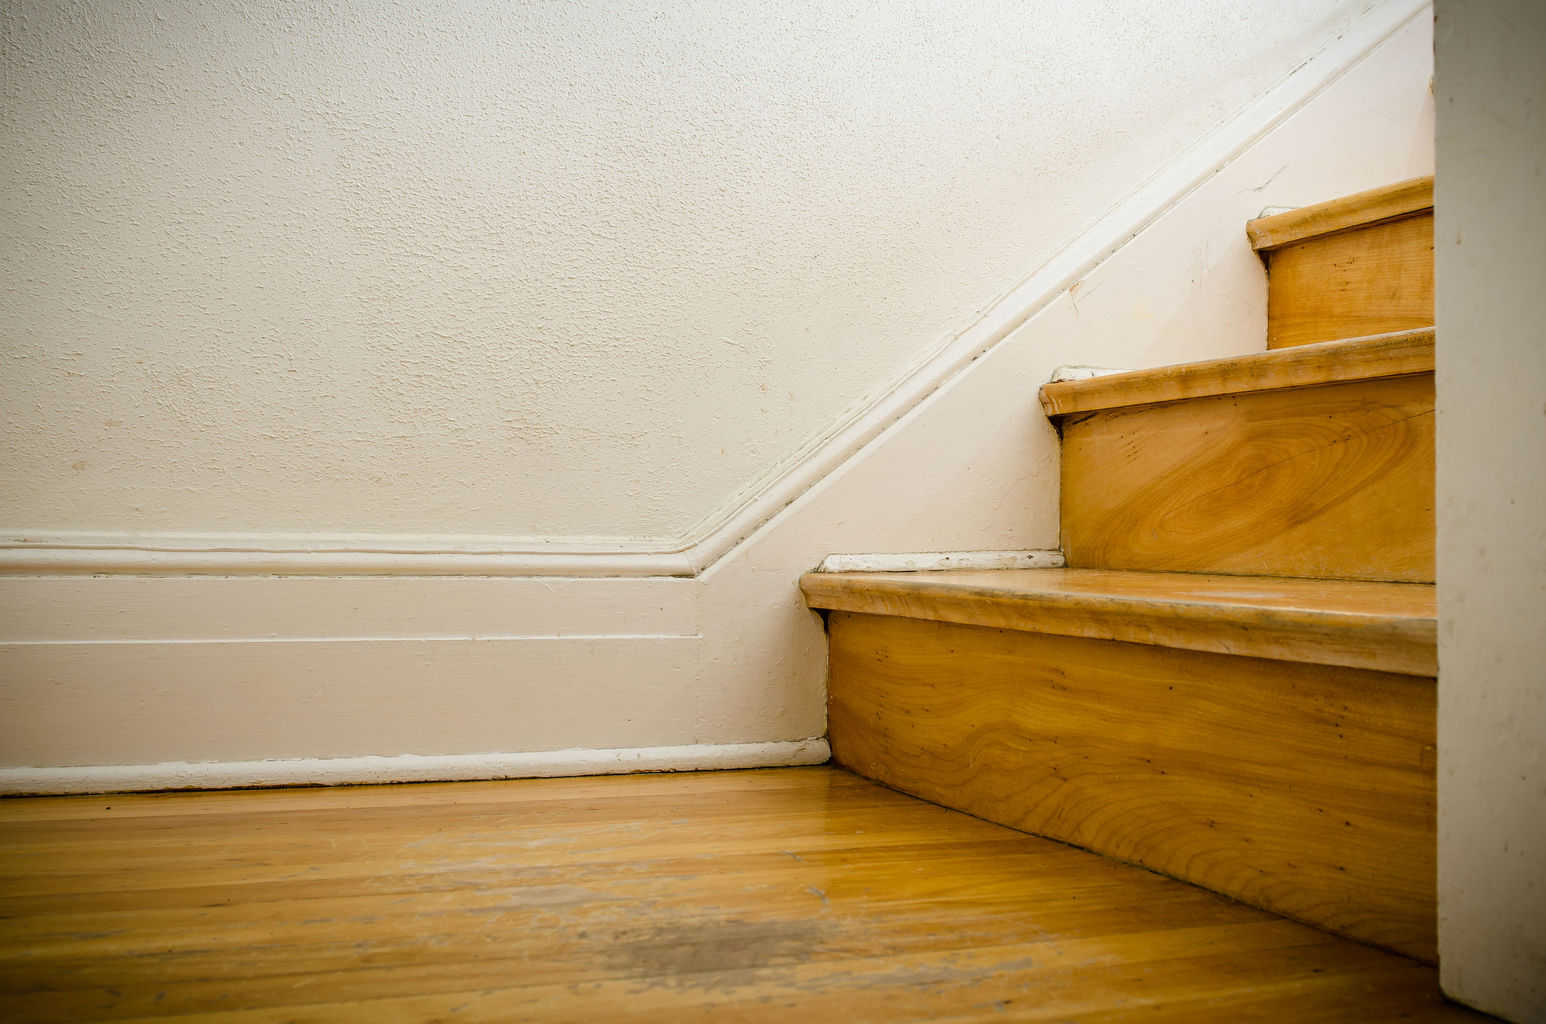 It Is Not Only A Good Idea To Have Hardwood Stairs, It Is A Great Idea! Why  Not Give Your Home That Little Extra Touch That Makes It Stand Out From  Everyone ...